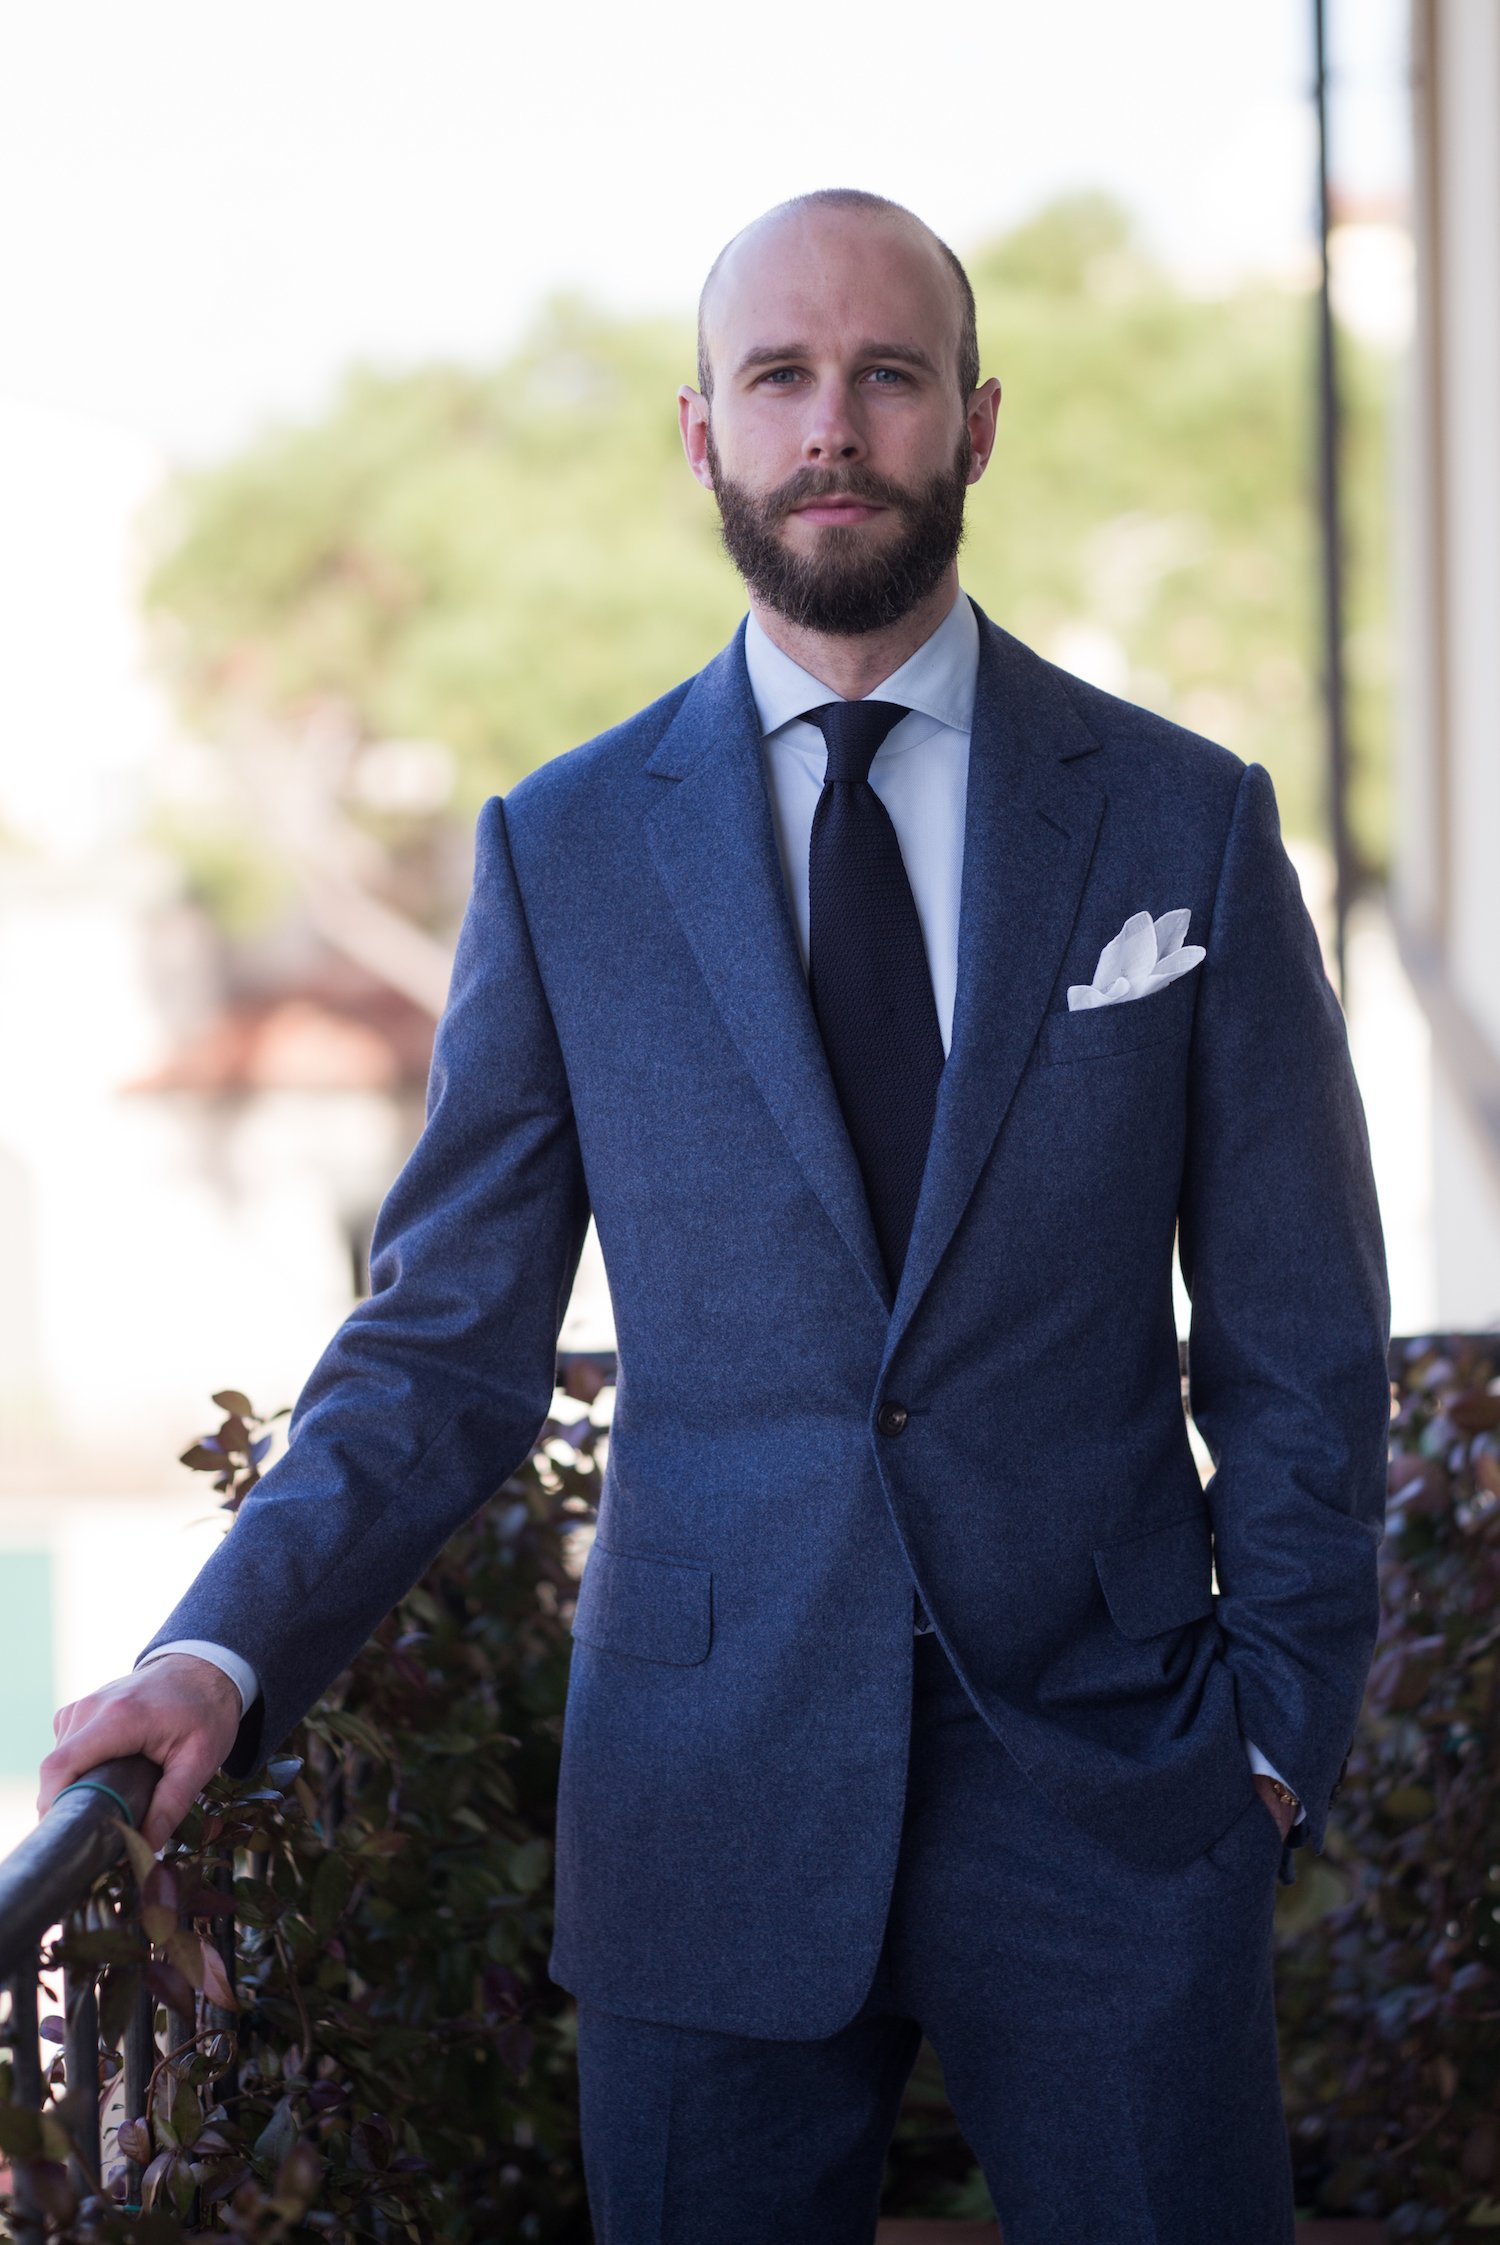 How To Buy A Quality Suit Permanent Style